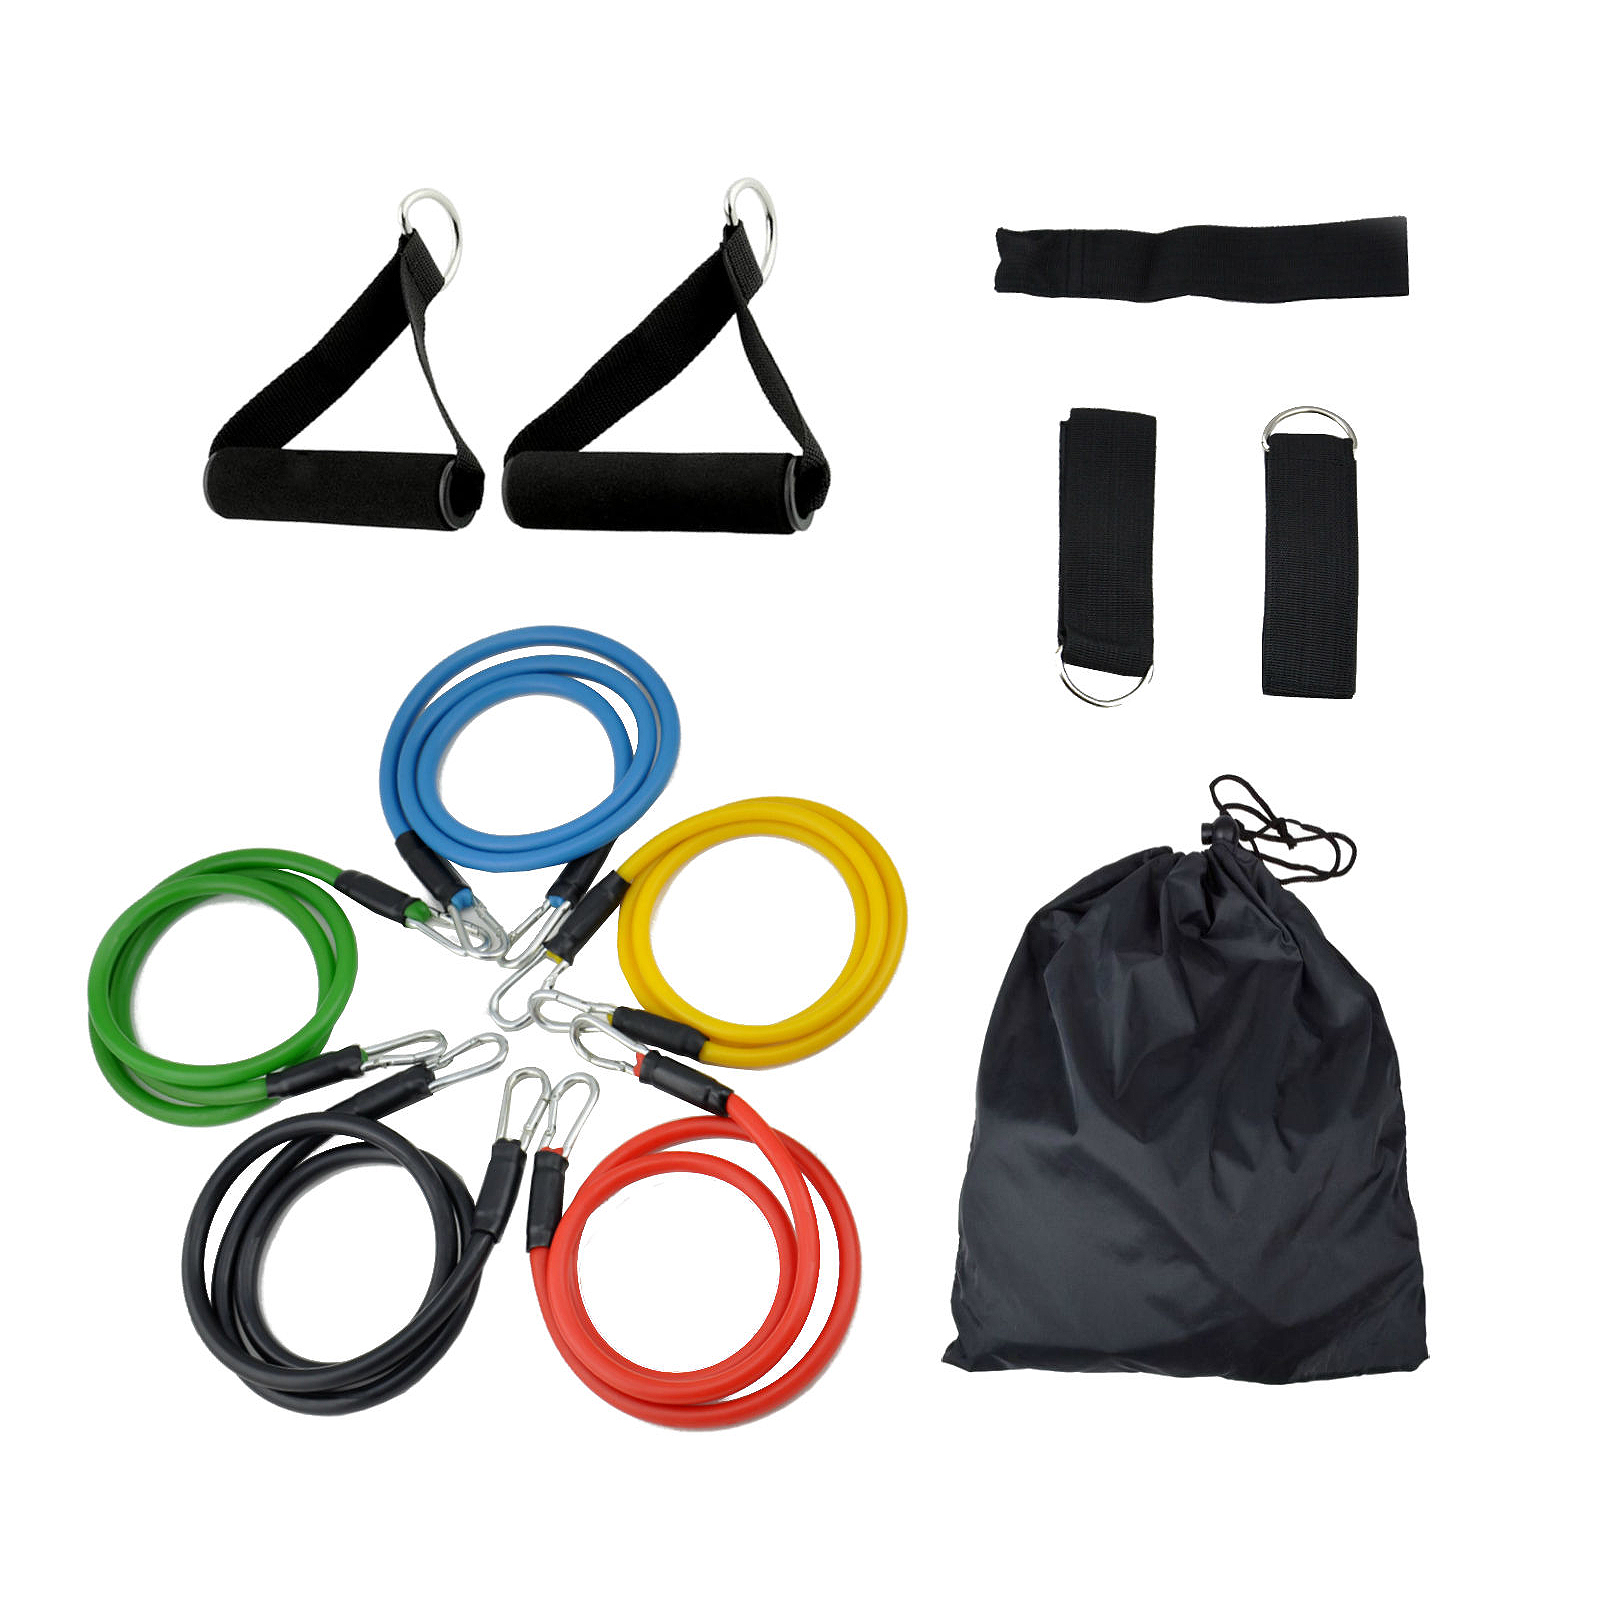 RESISTANCE BANDS Set For Yoga Abs Pilates Fitness Exercise Workout 11 Pieces